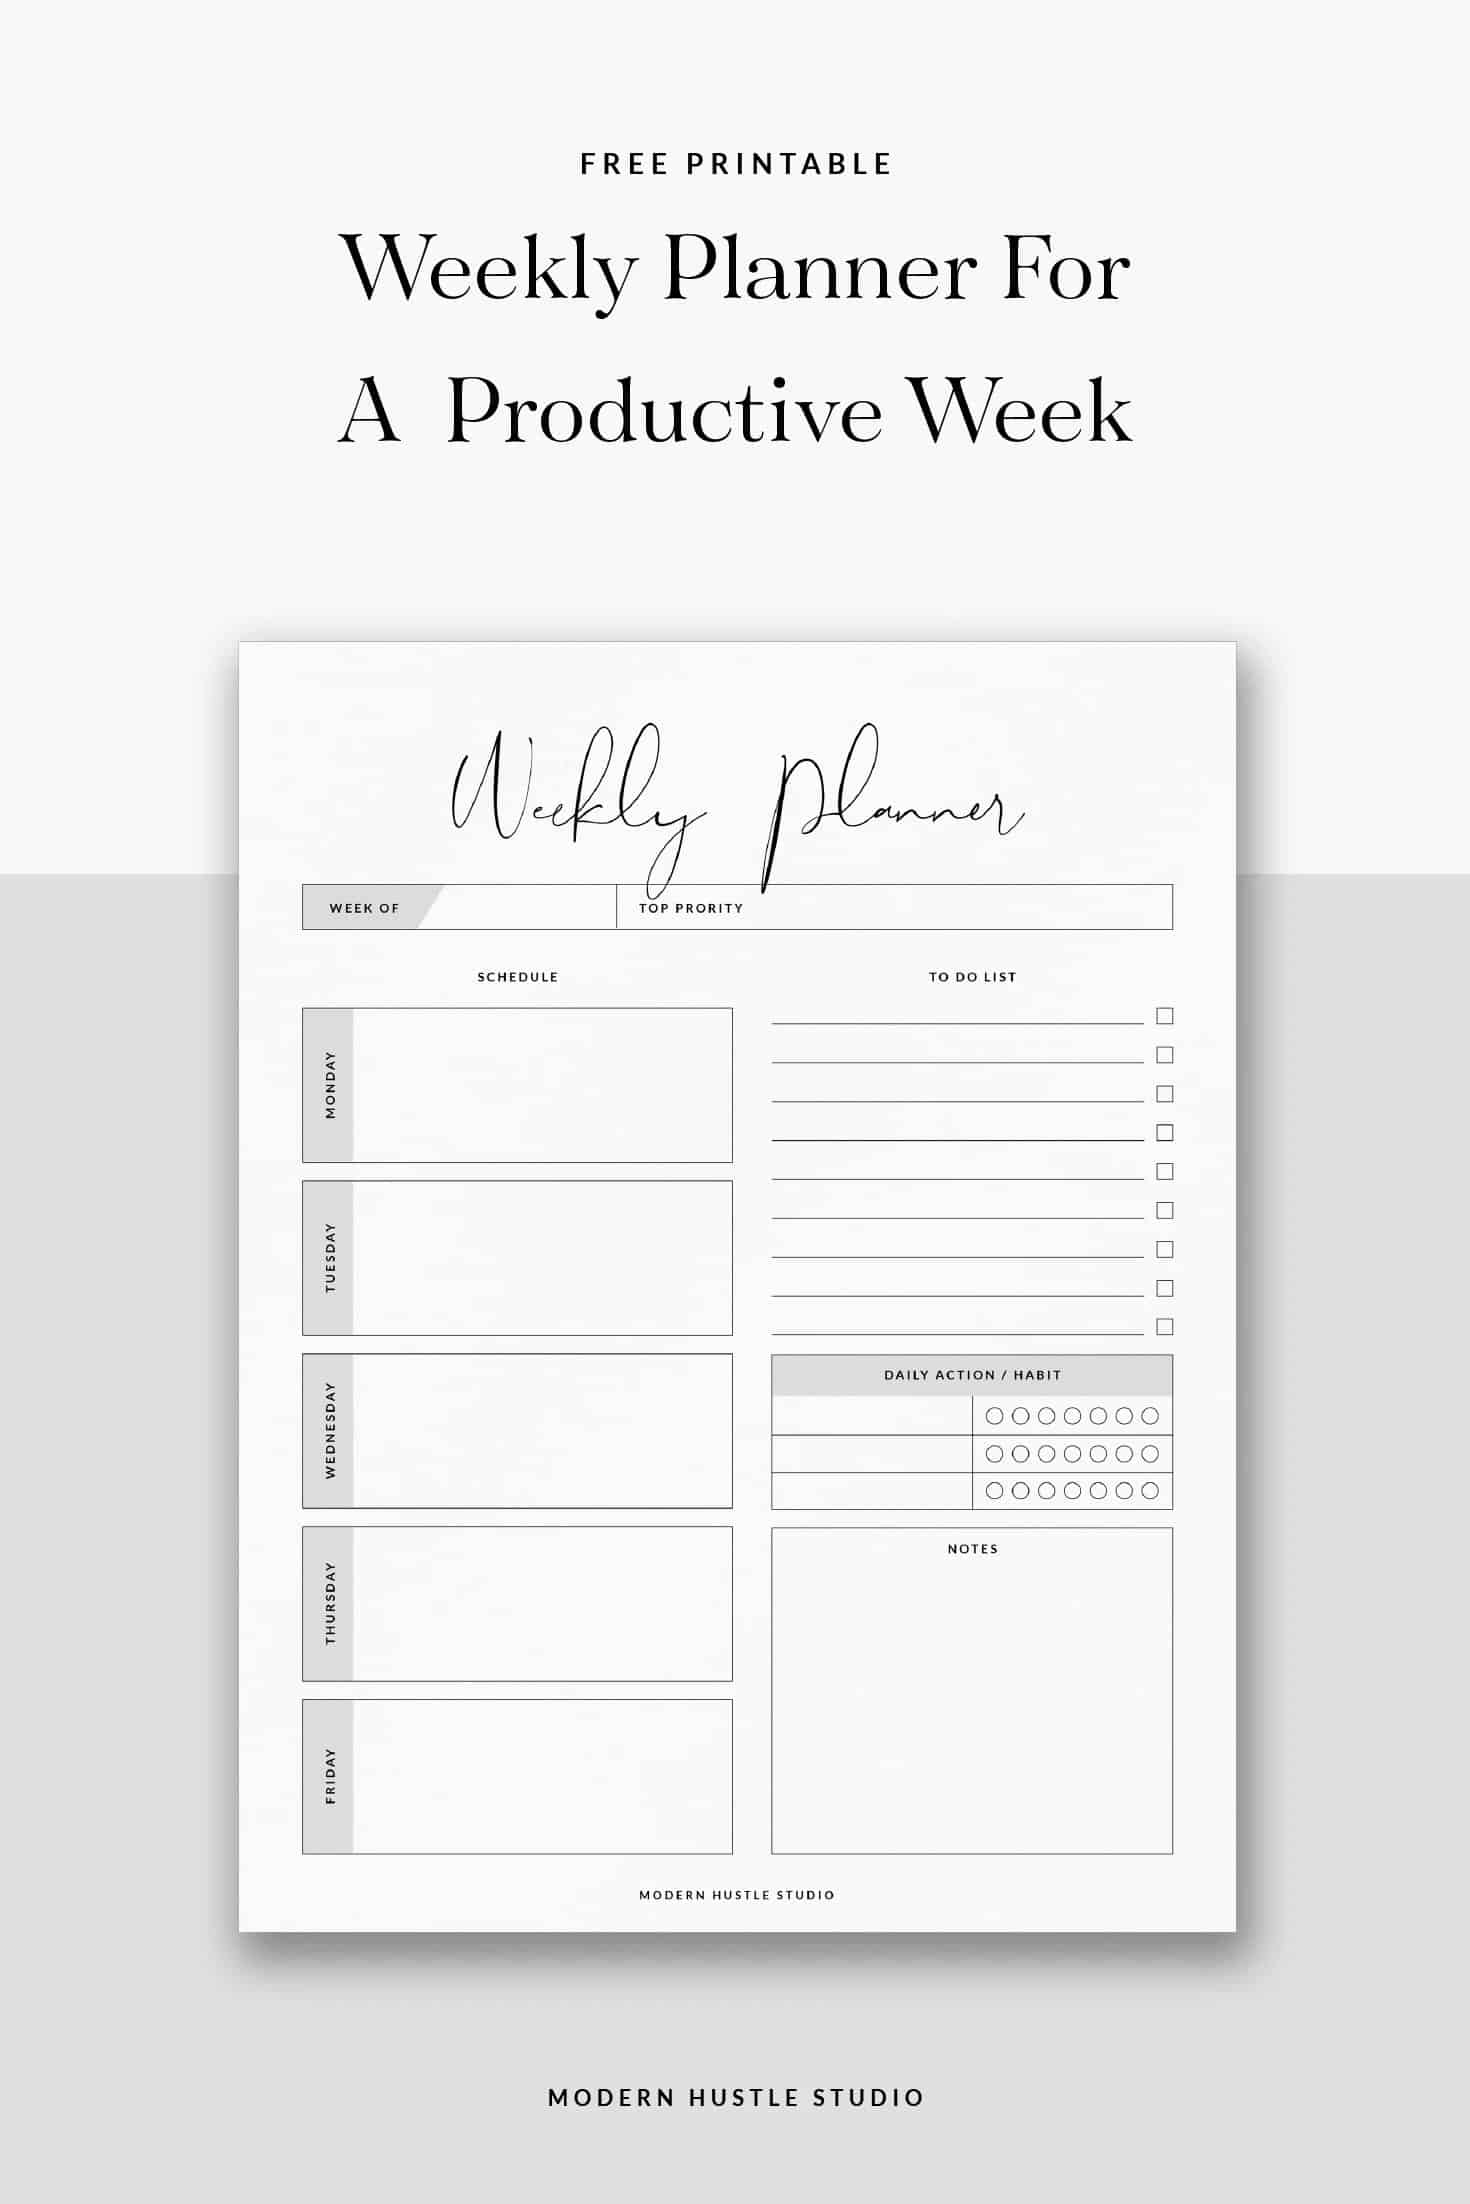 free weekly printable digital planner modern hustle studio